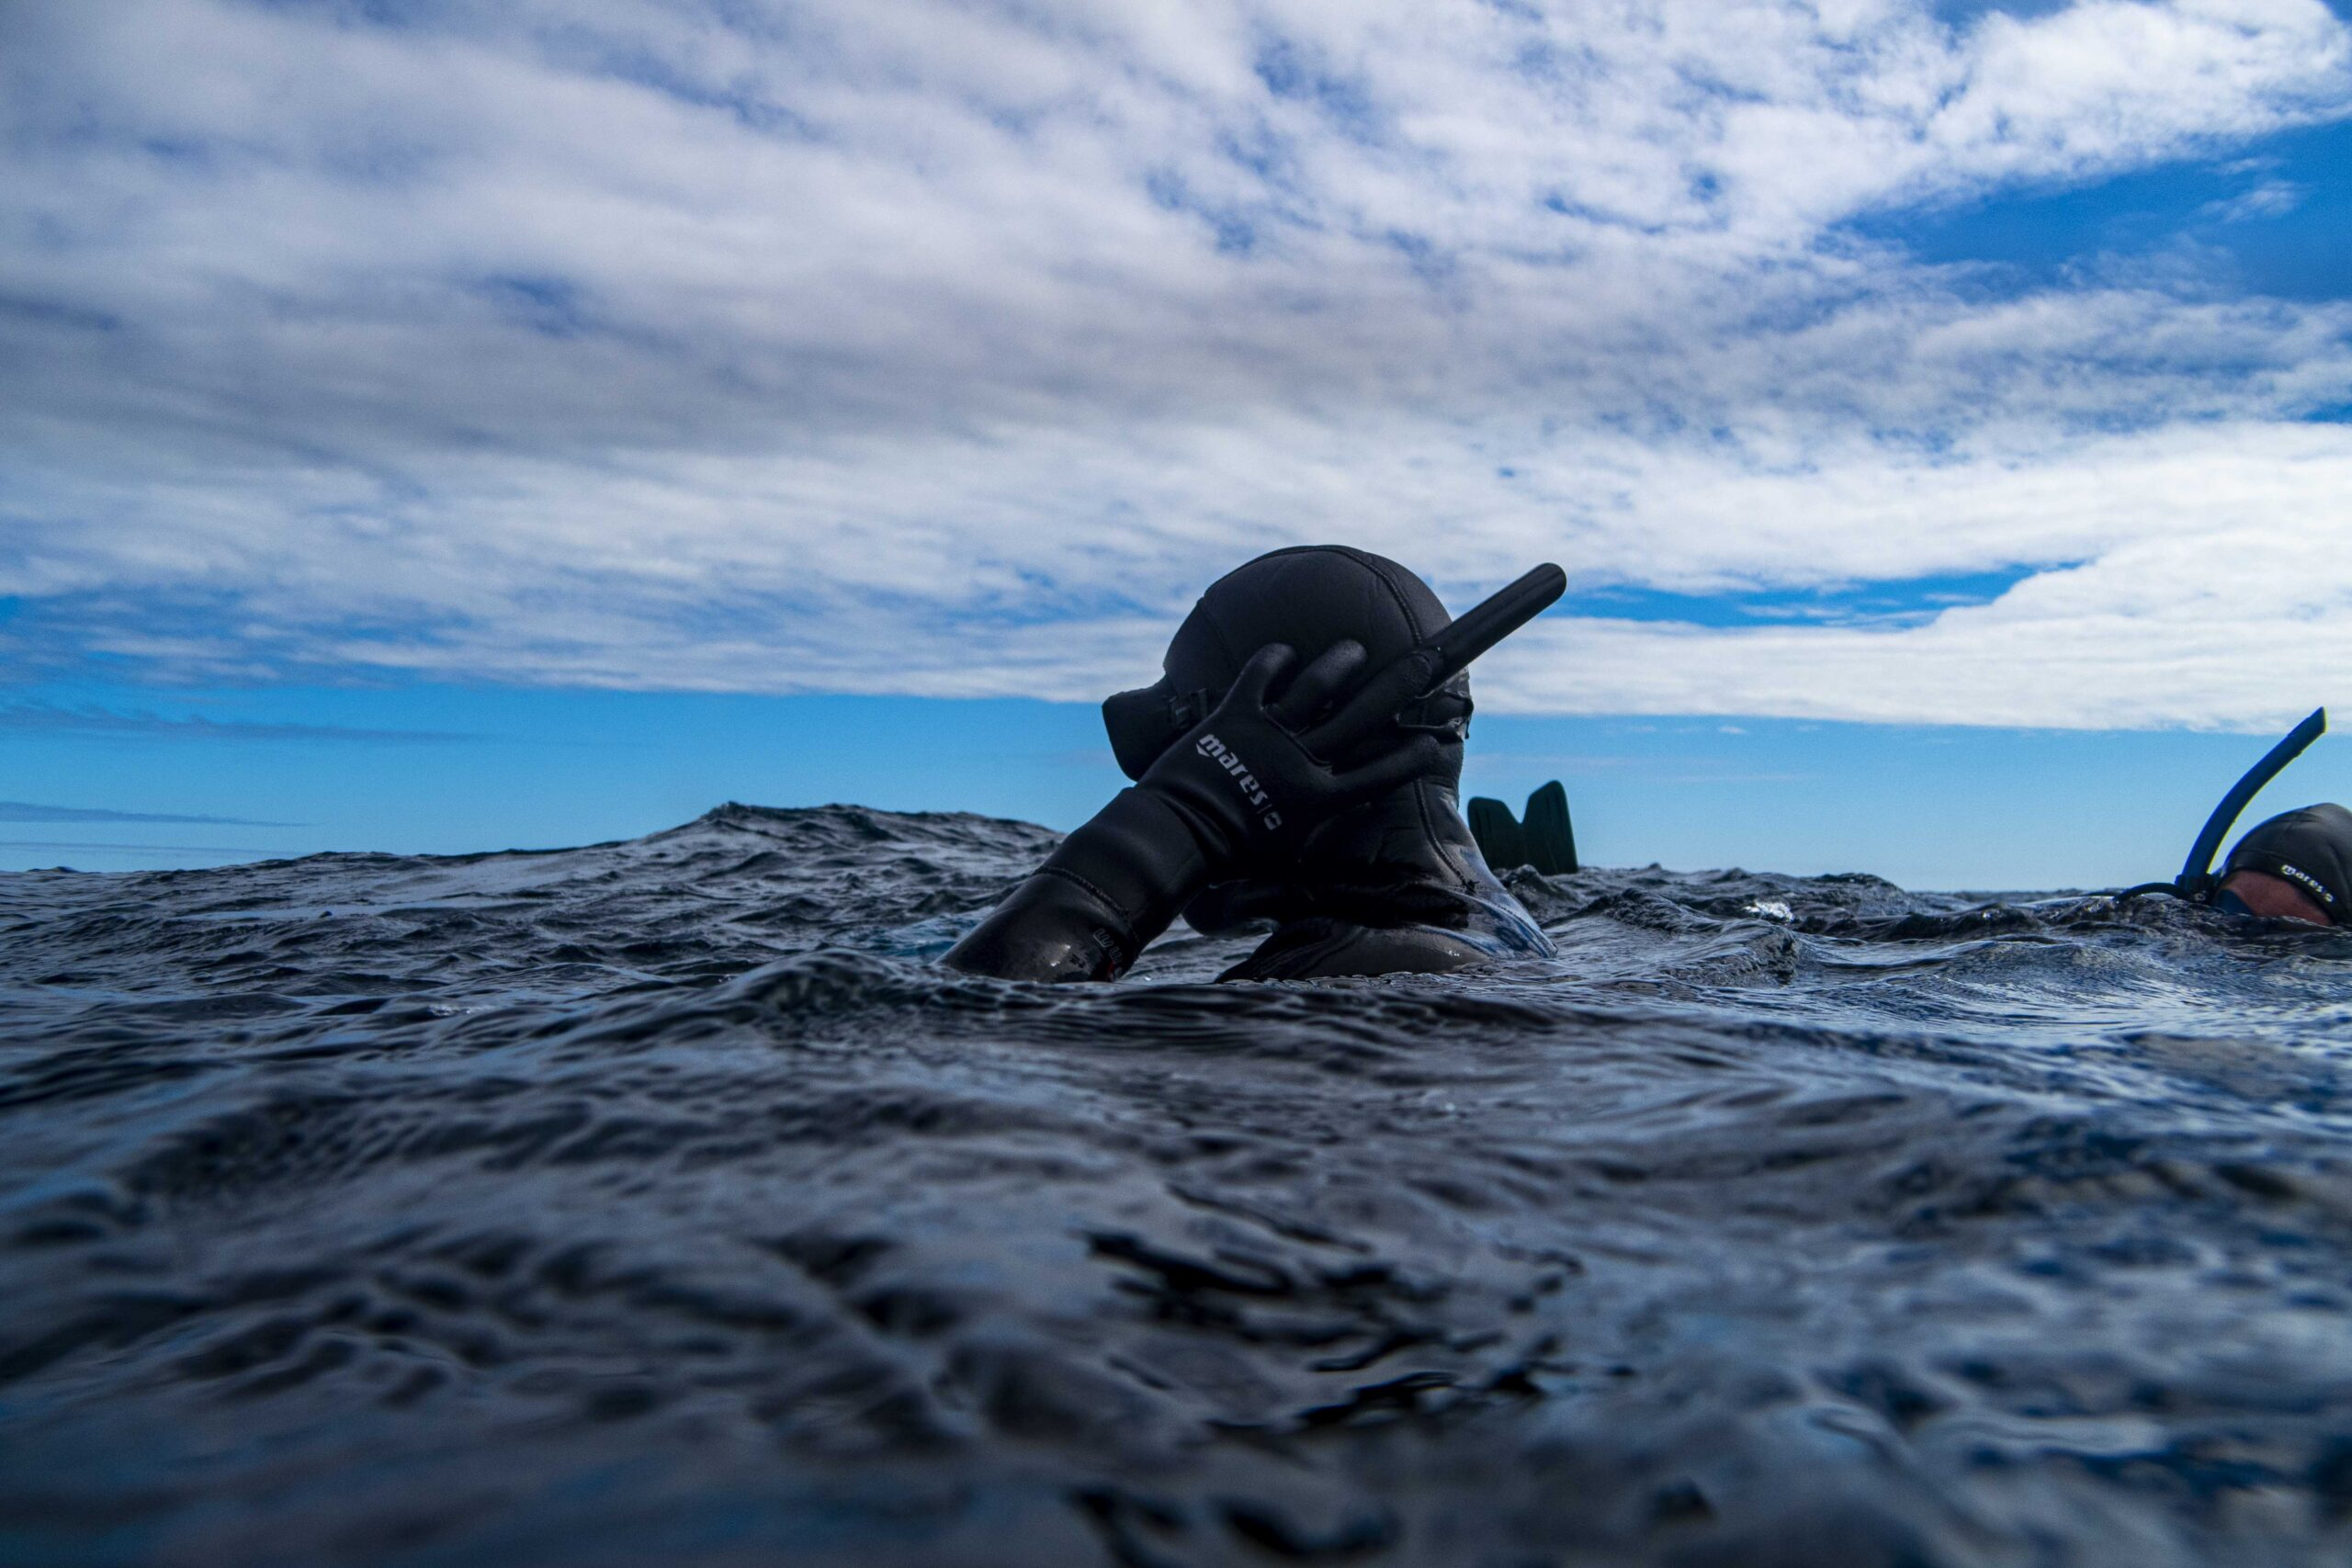 Freediving in the sea